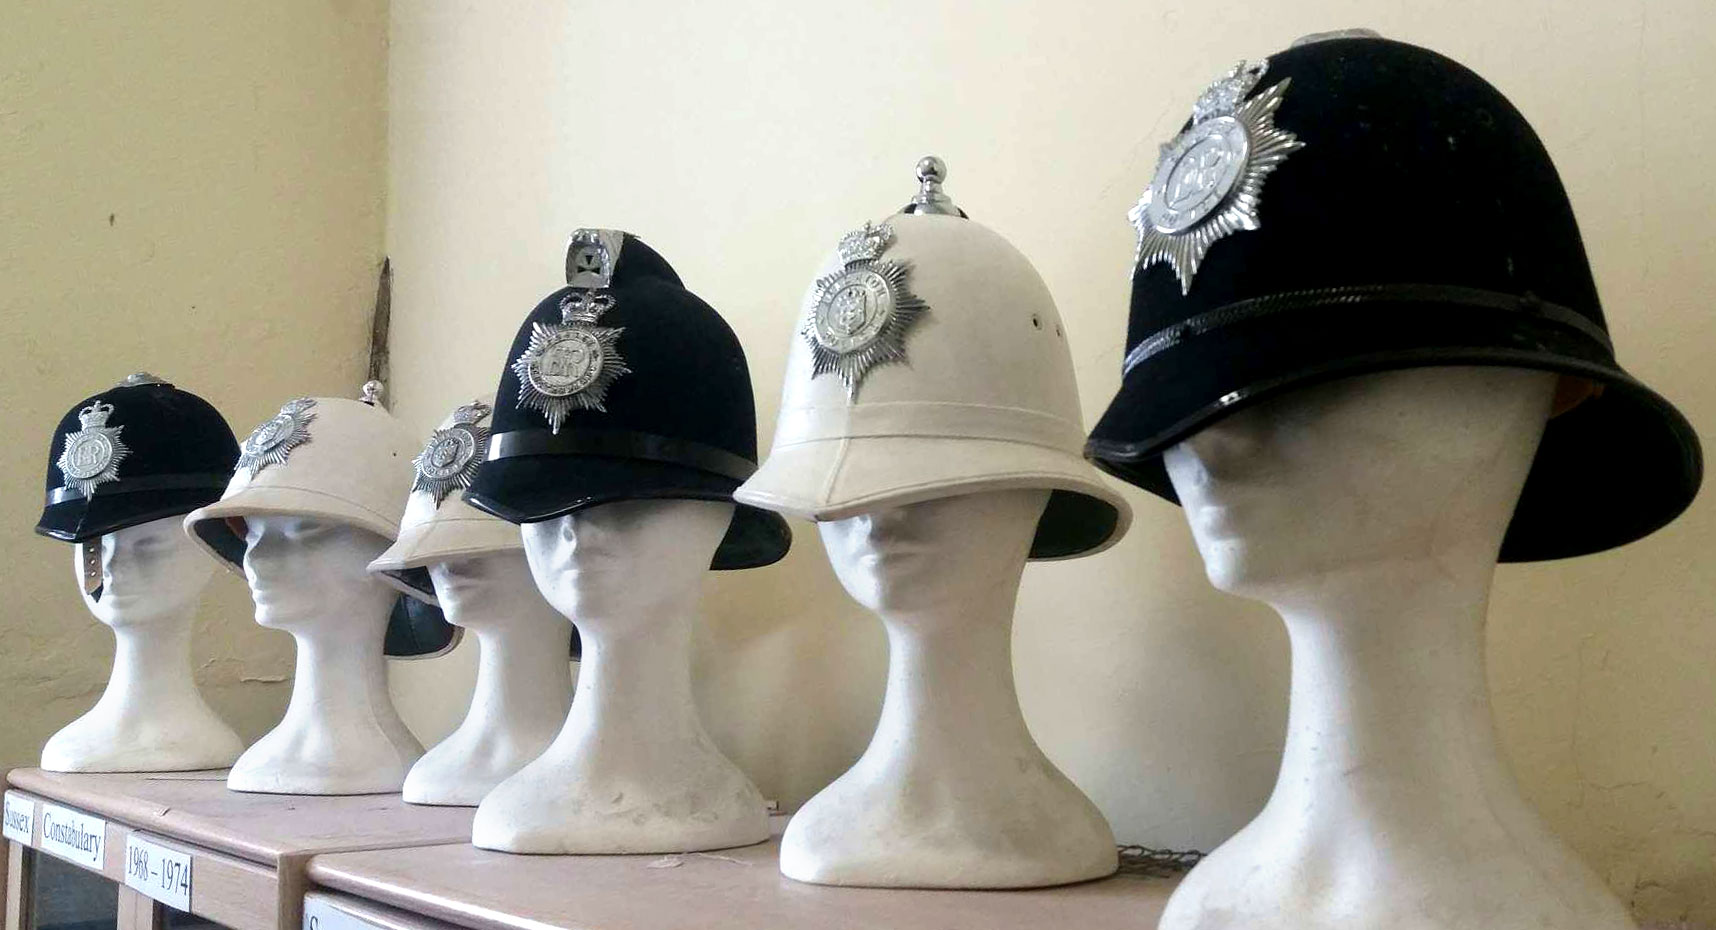 photograph of six model busts wearing black and white police helmets